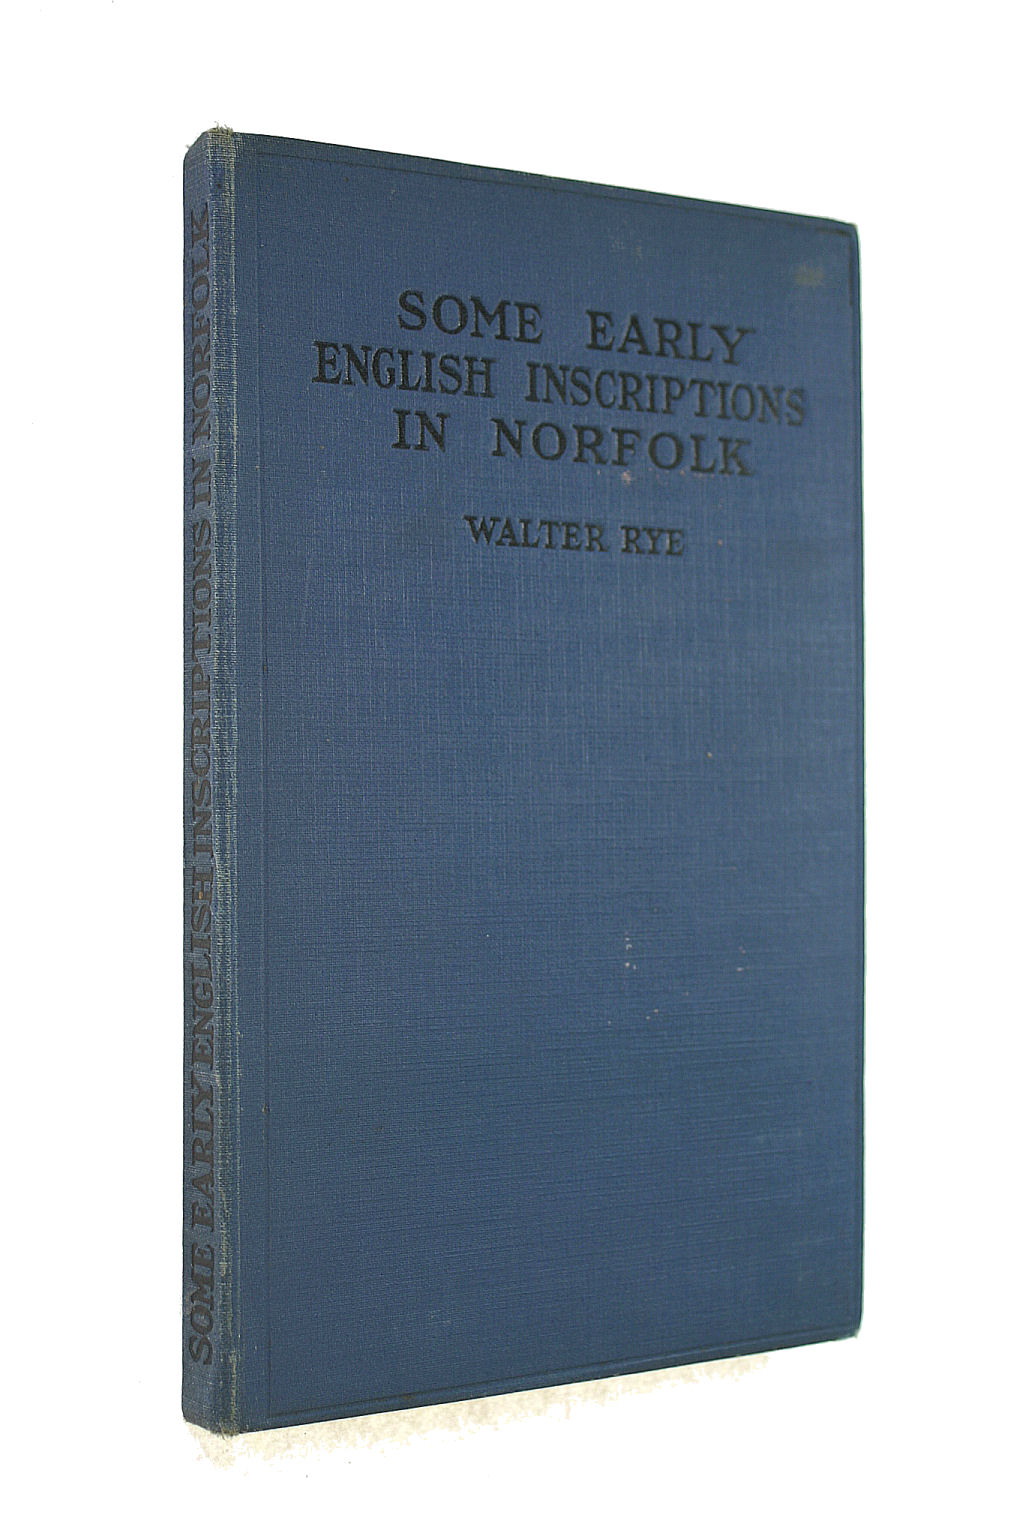 Image for Some Early English Inscriptions in Norfolk before 1600, mostly from (1) Churches, Monuments, and windows, pulpits, doors, and seats; but also from (2) houses, fire-places, etc., etc.